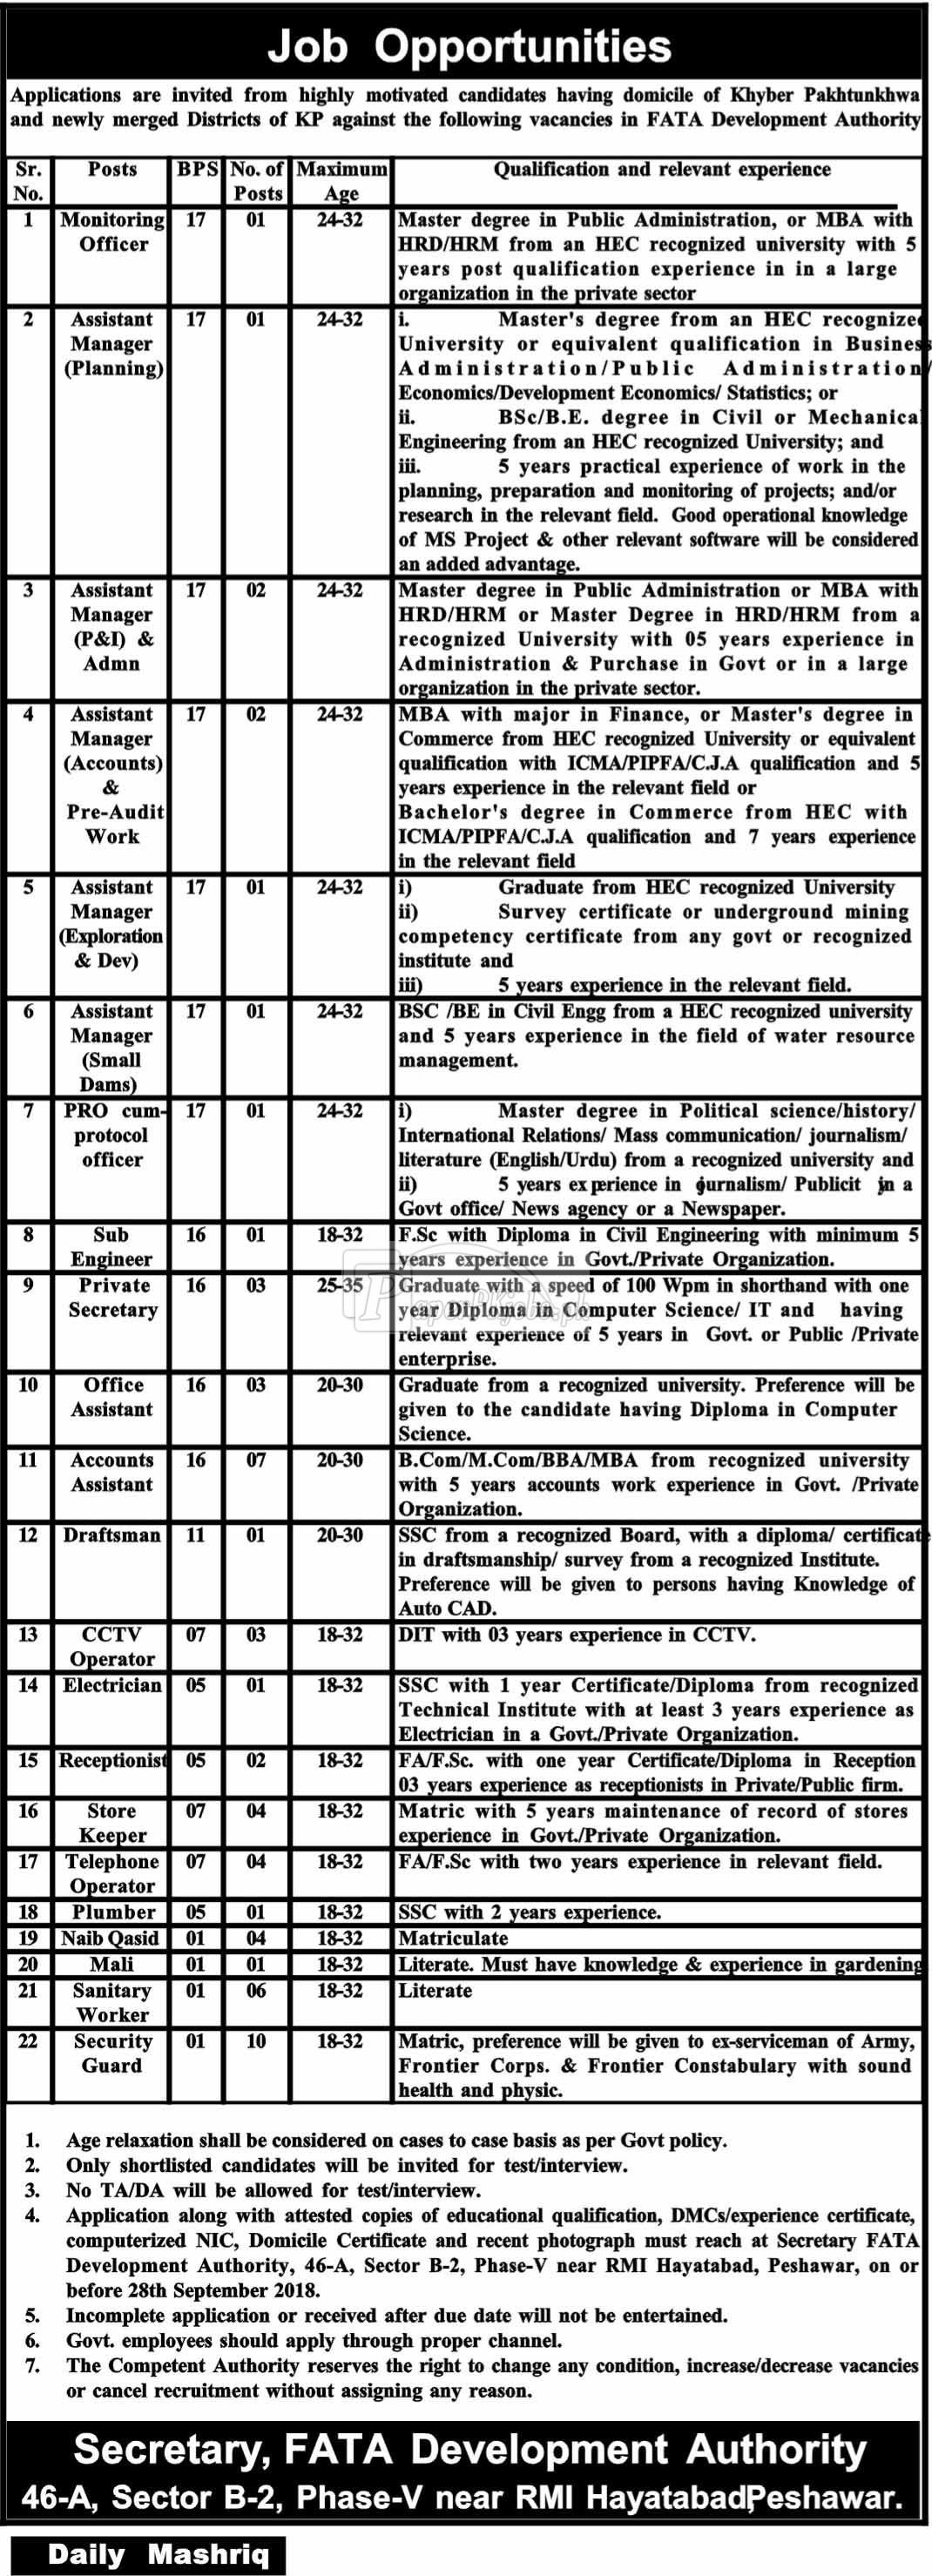 FATA Development Authority Peshawar Jobs 2018